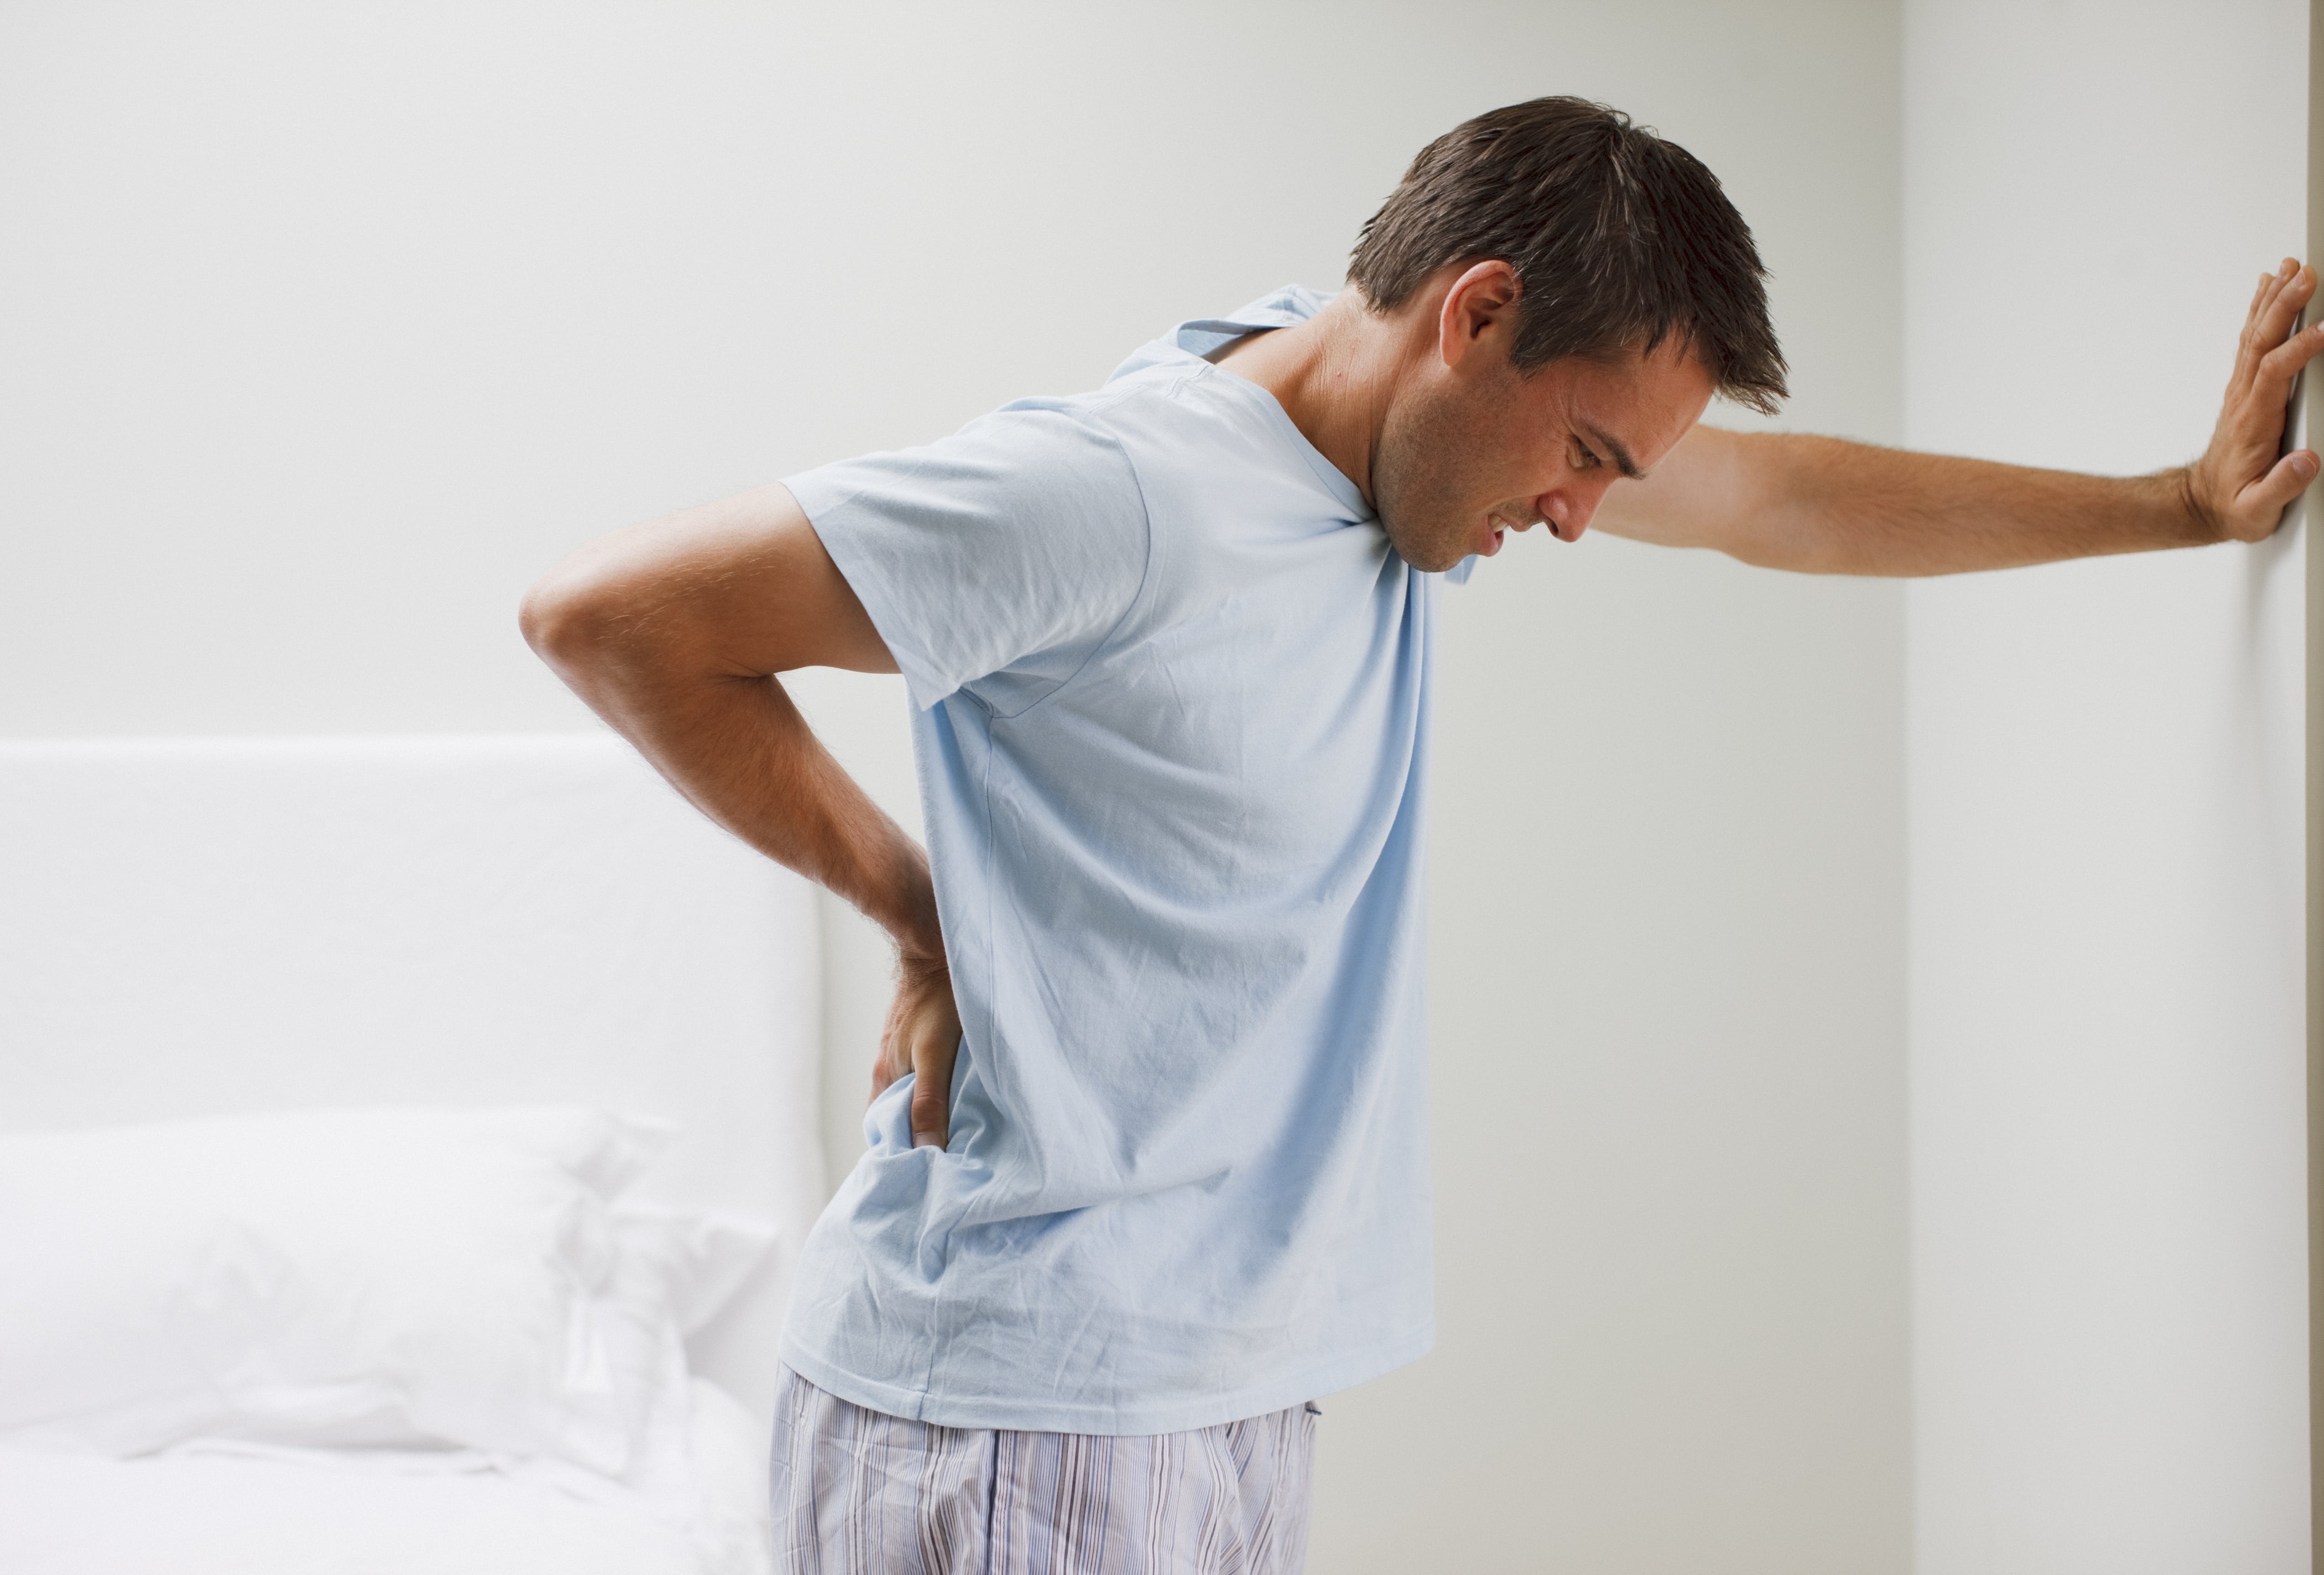 Man with backache leaning against wall